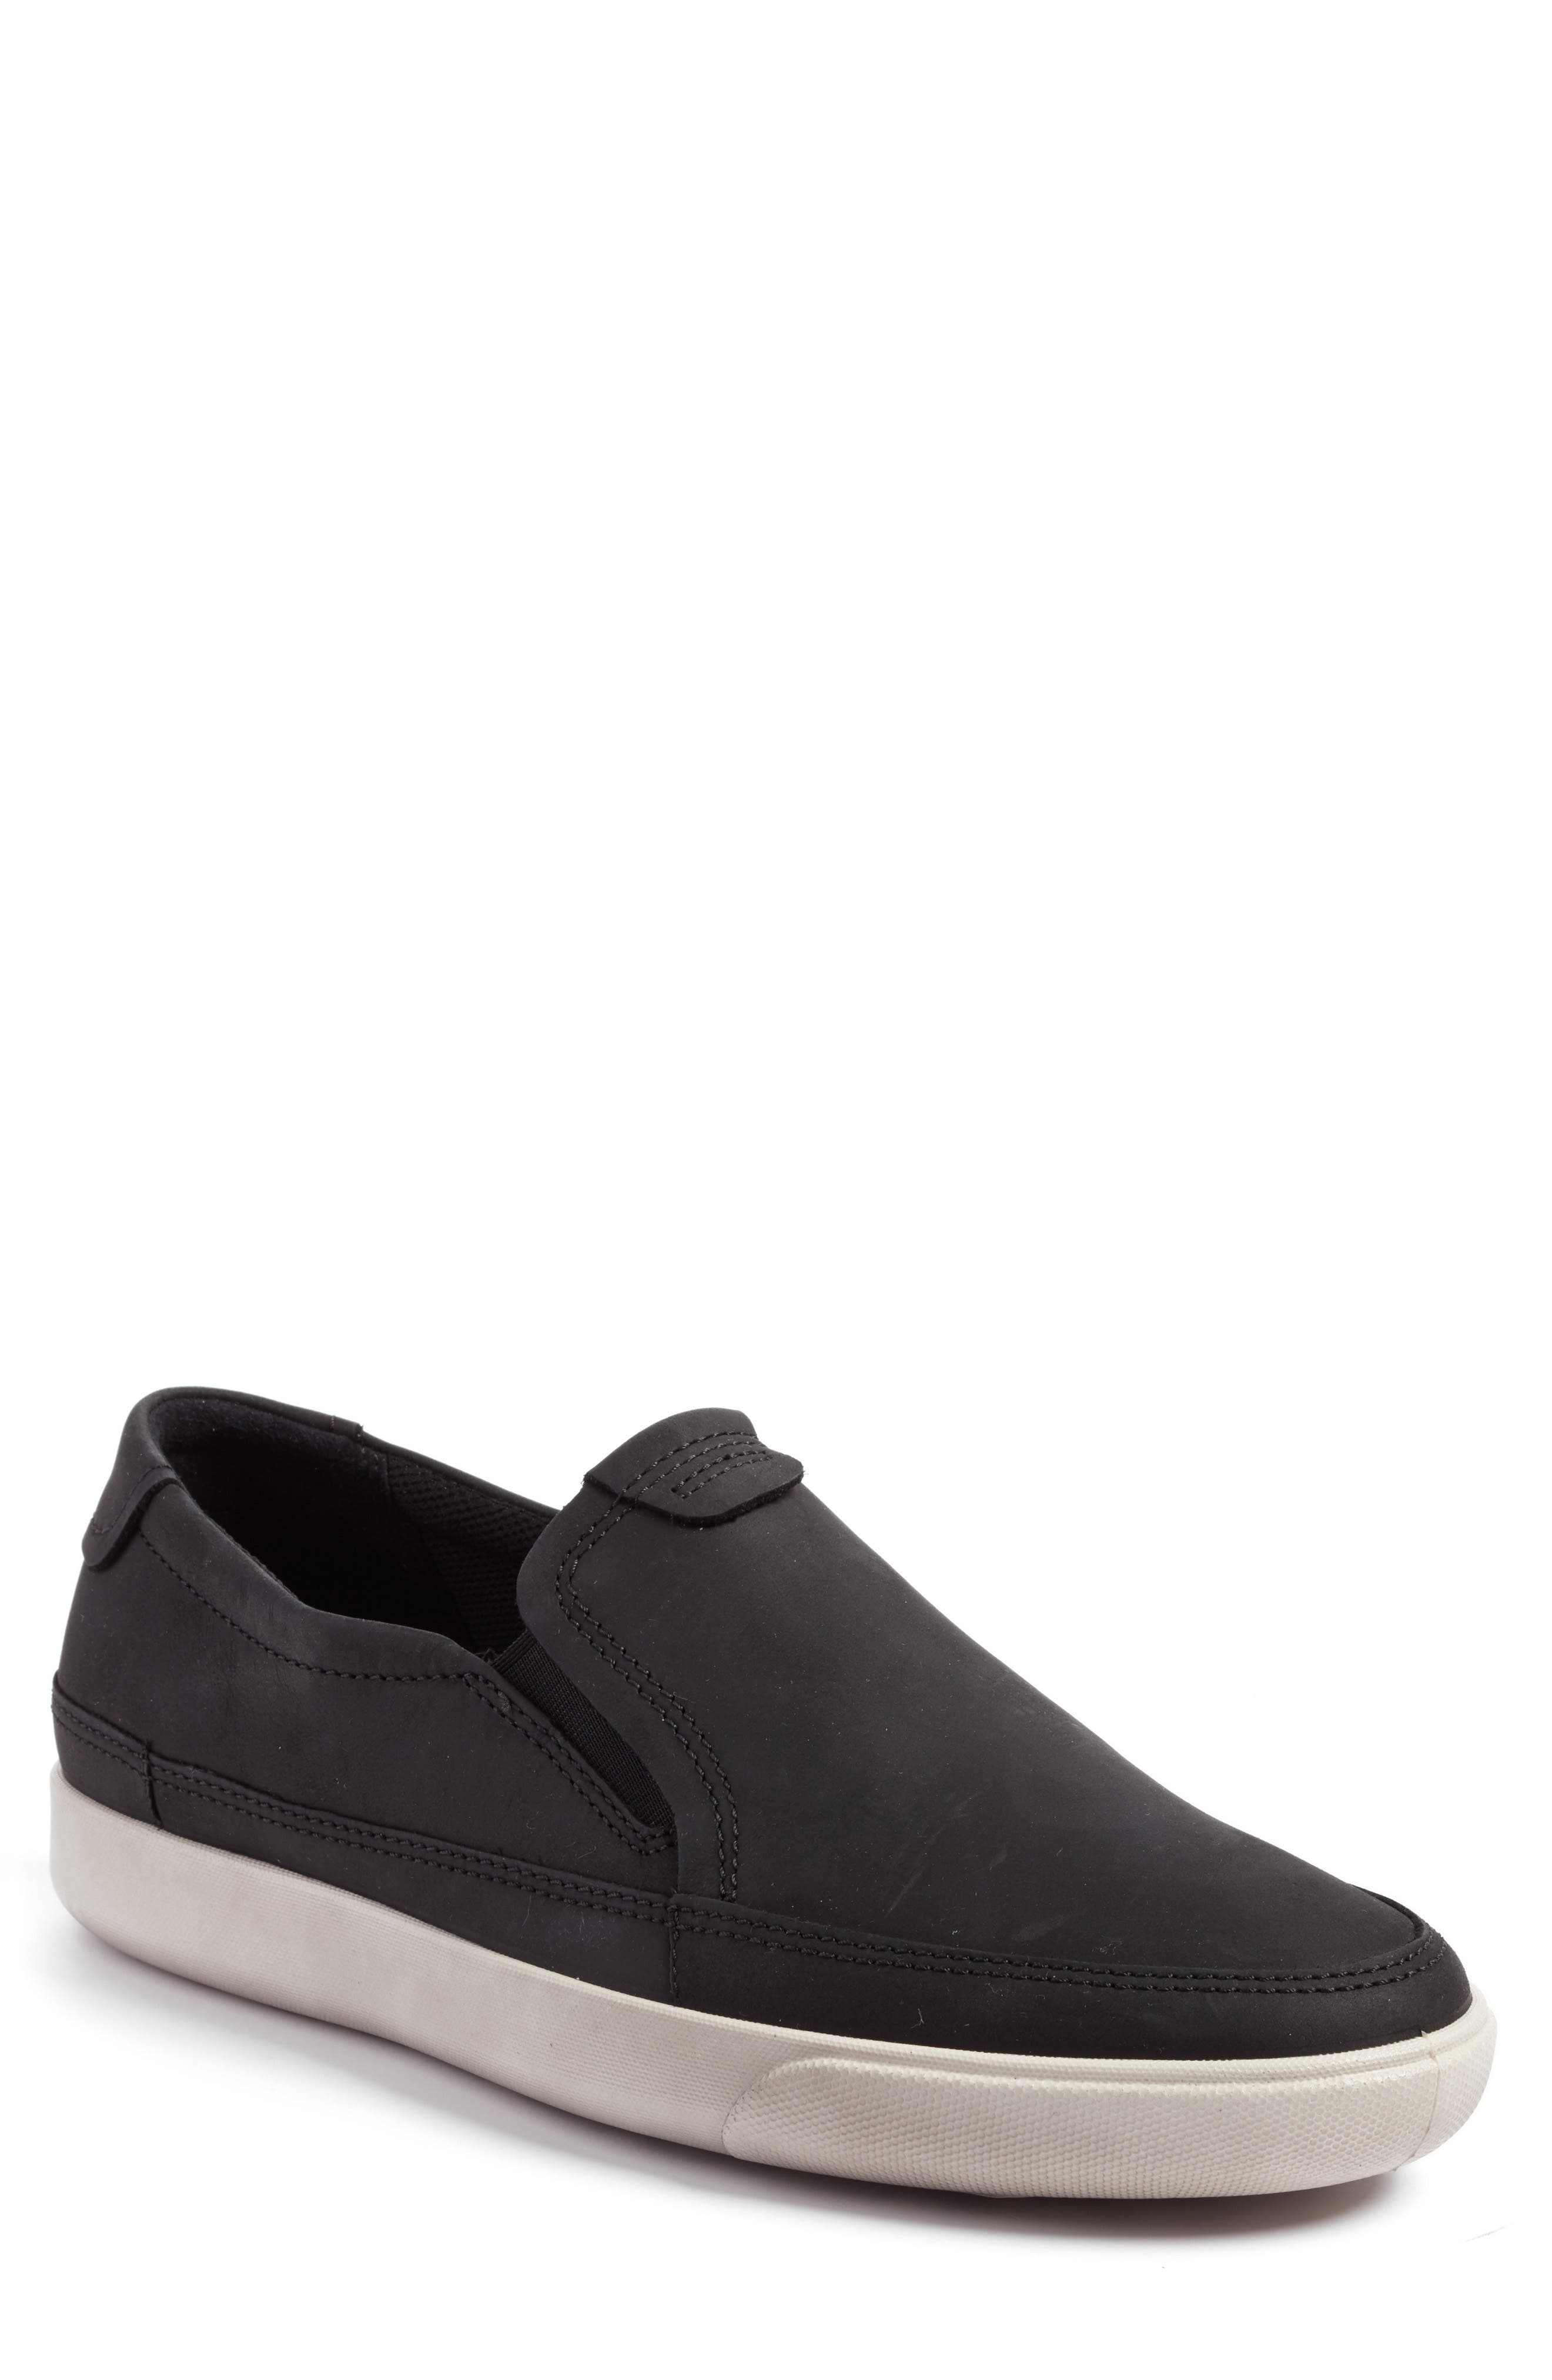 'Gary' Slip-On,                         Main,                         color, Black Leather